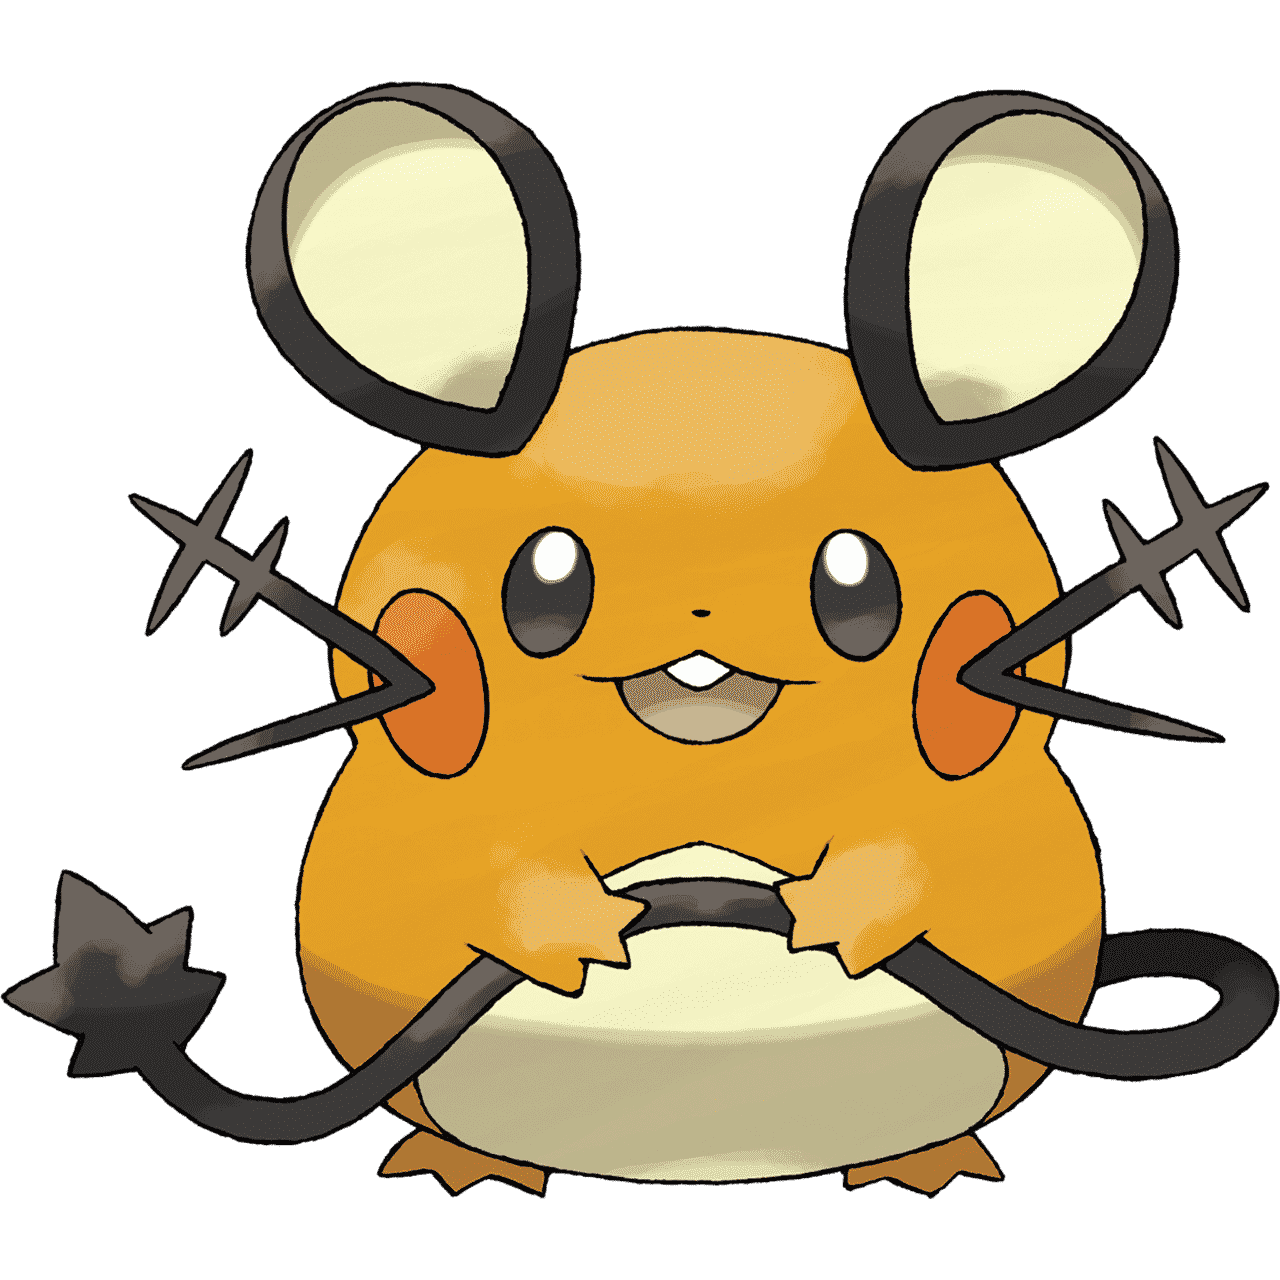 Pokémon Artwork Dedenne